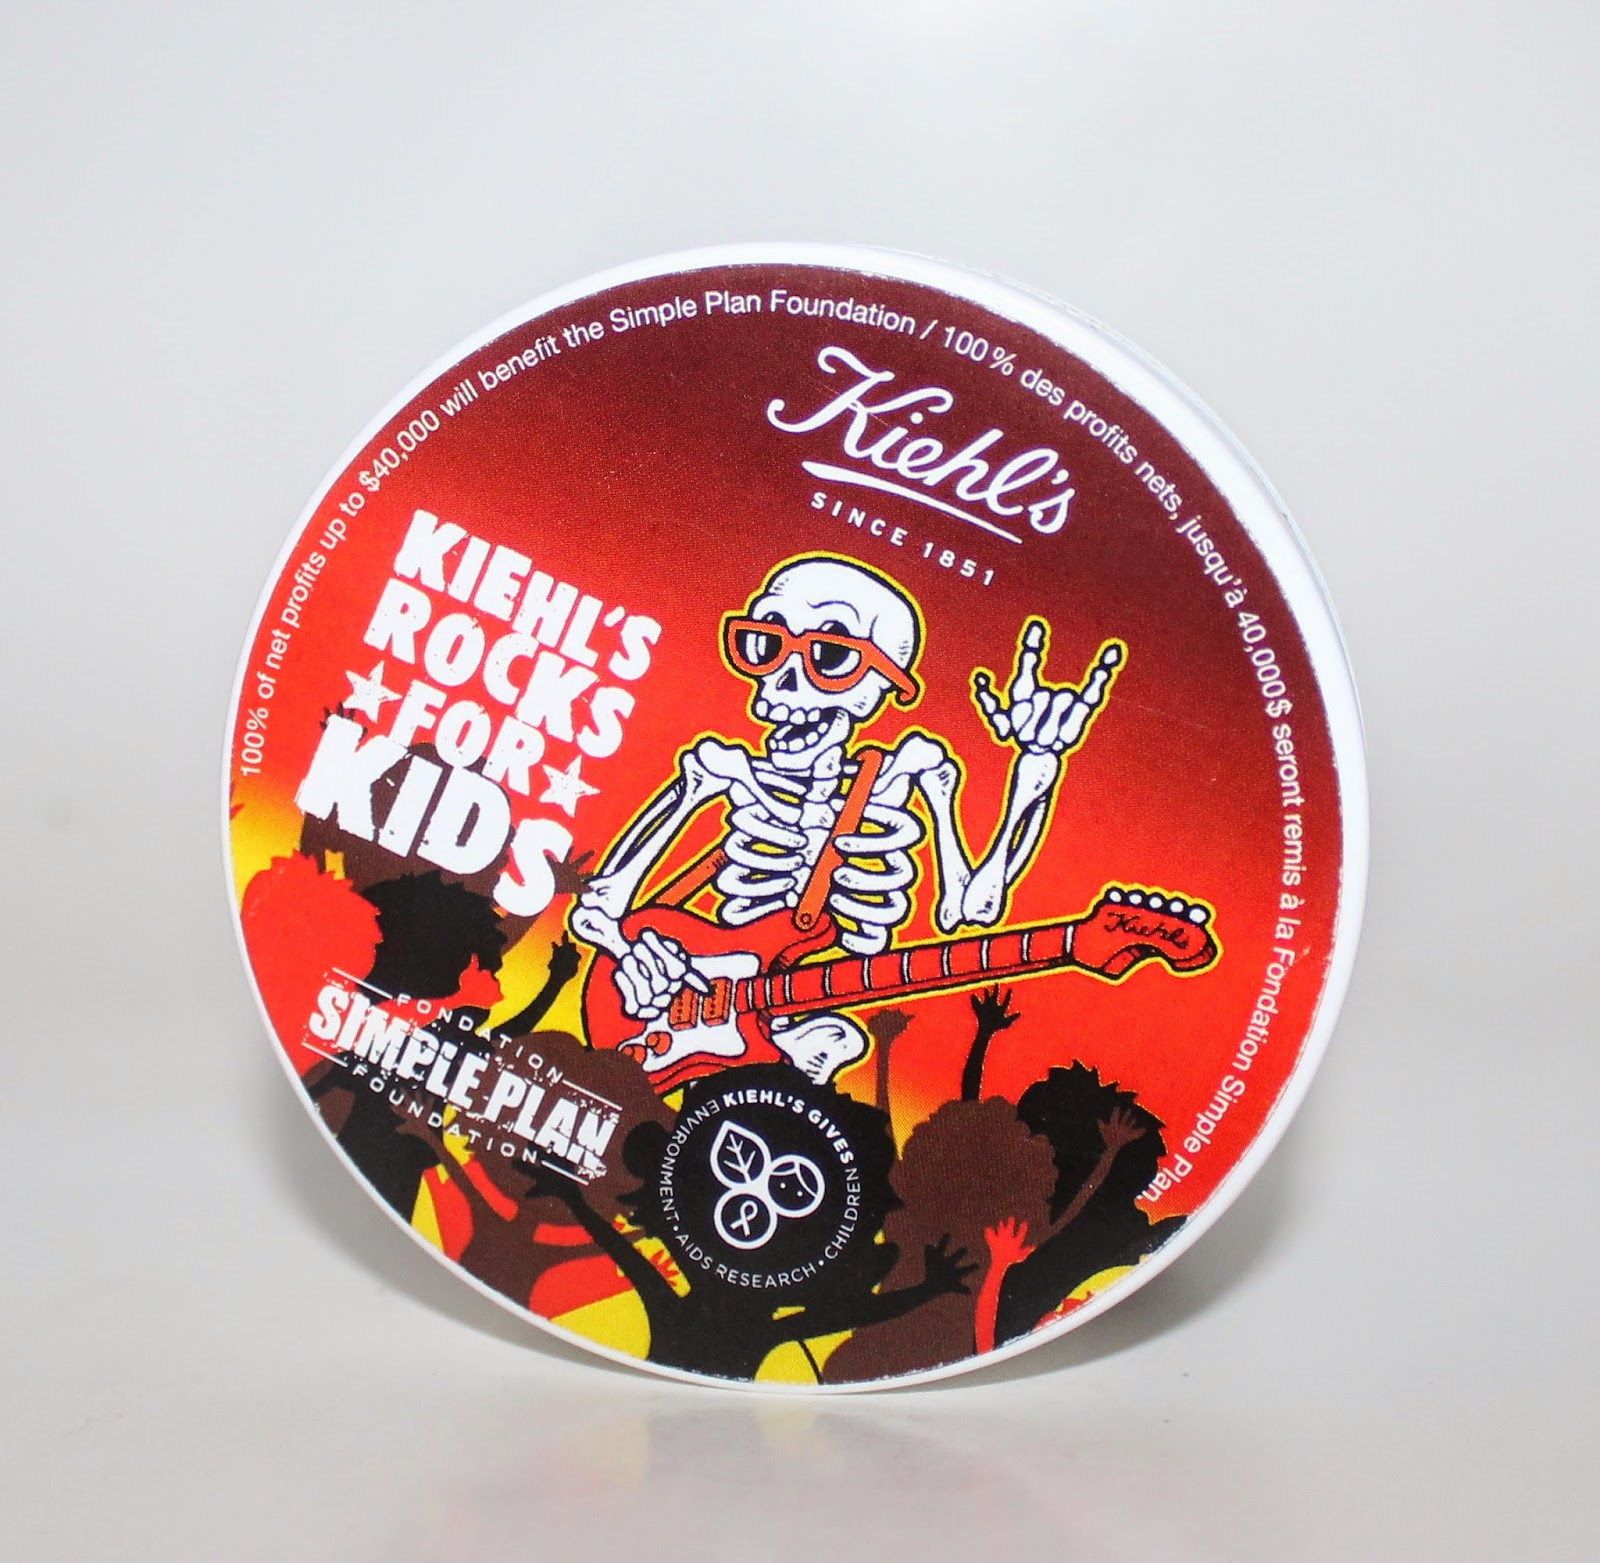 Kiehl's Rocks for Kids Simple Plan Limited Edition Ultra Facial Cream